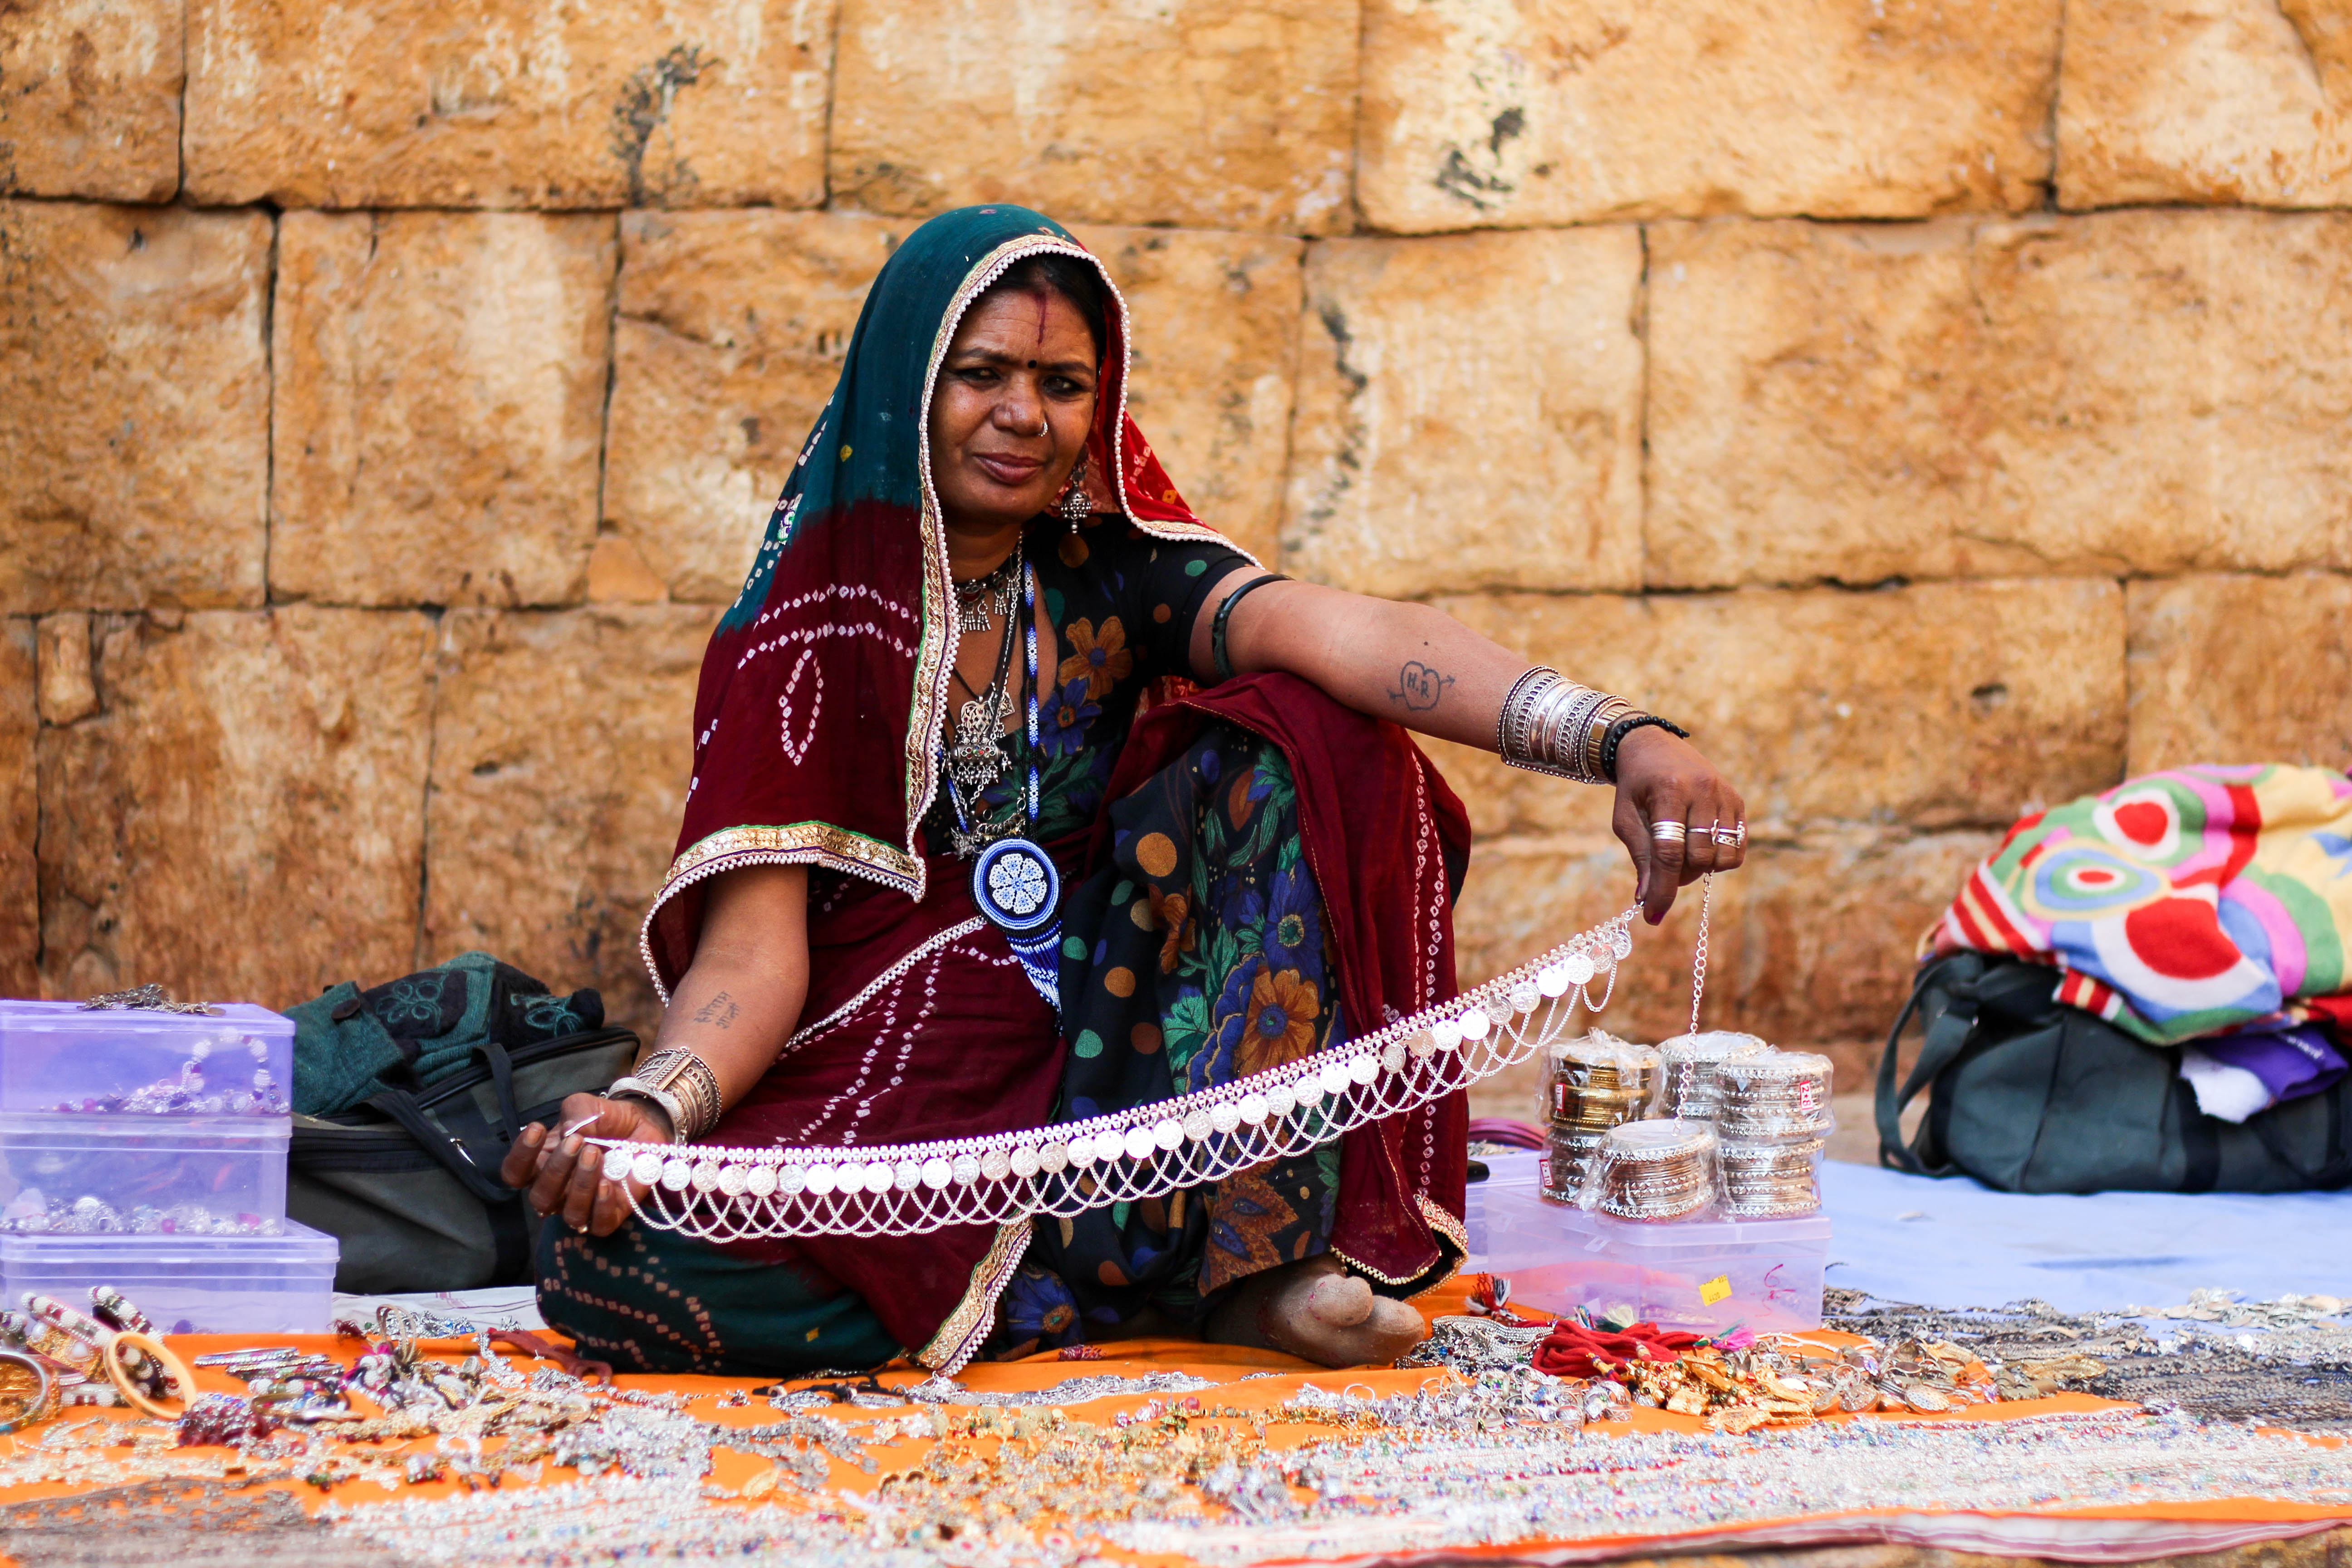 Jaisalmer One Girl One Journey